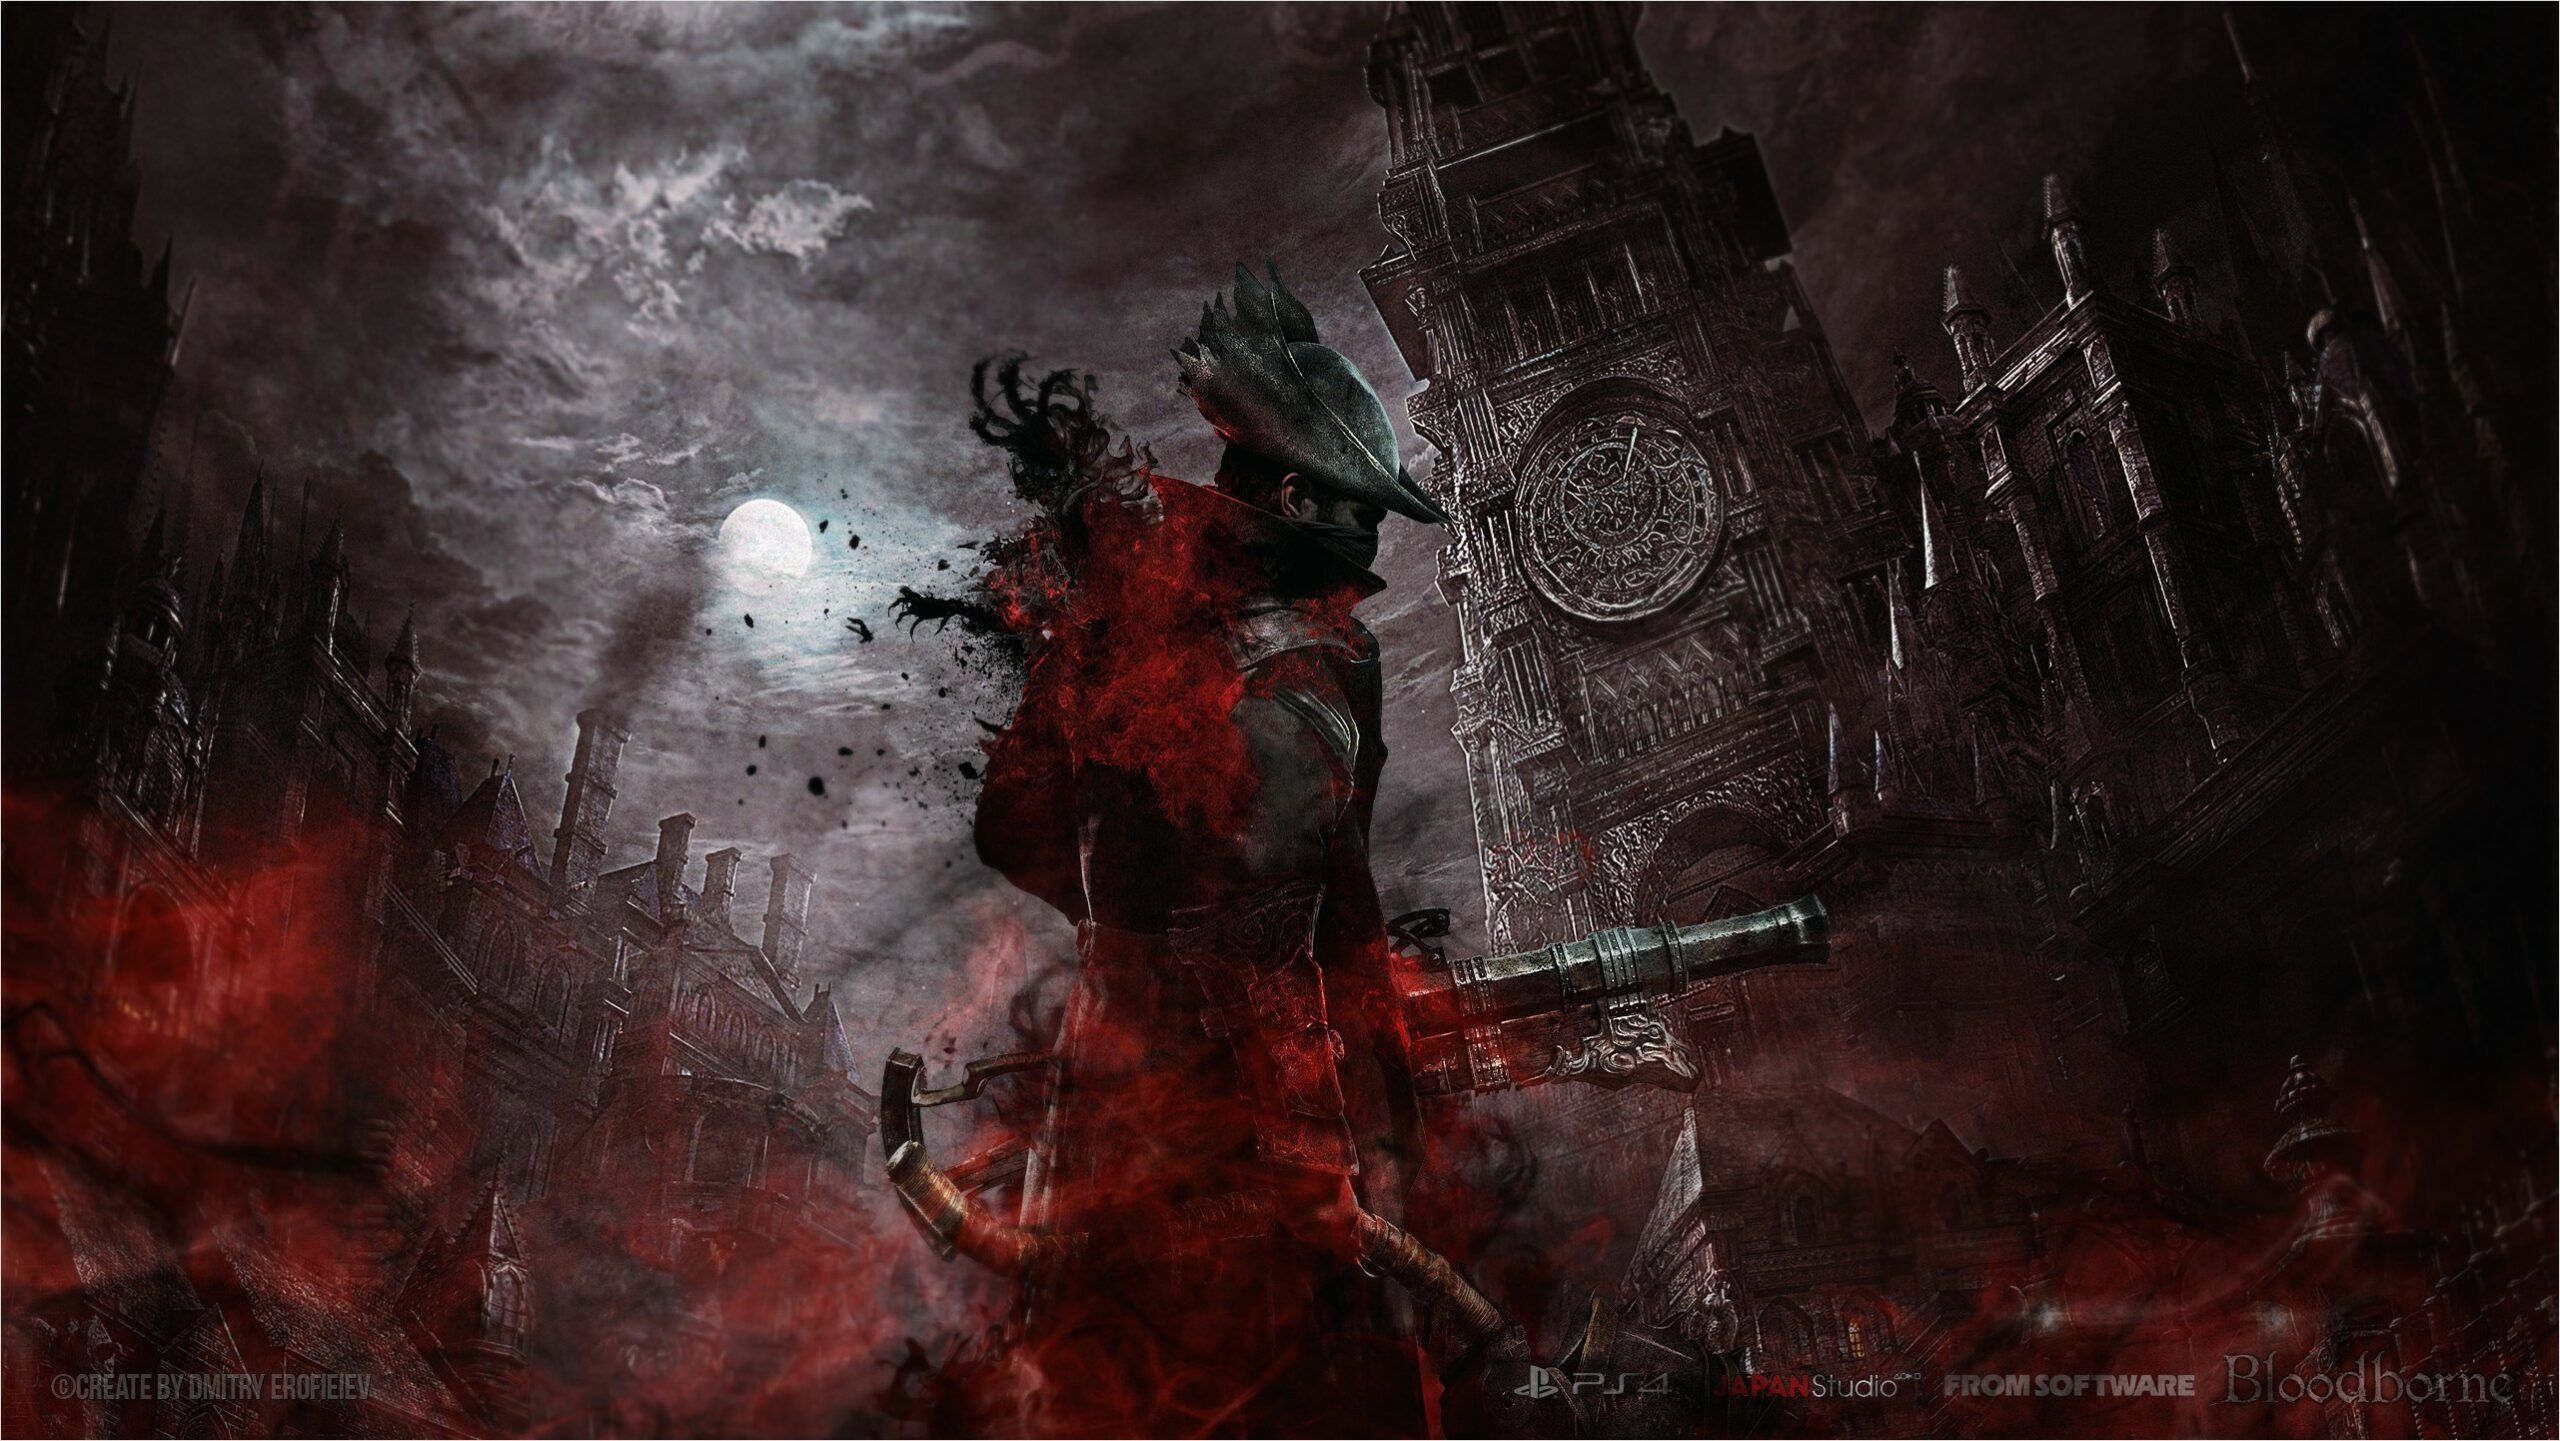 1440 X 2960 Wallpaper 4k Bloodborne In 2020 Bloodborne Art Bloodborne Wallpaper Backgrounds